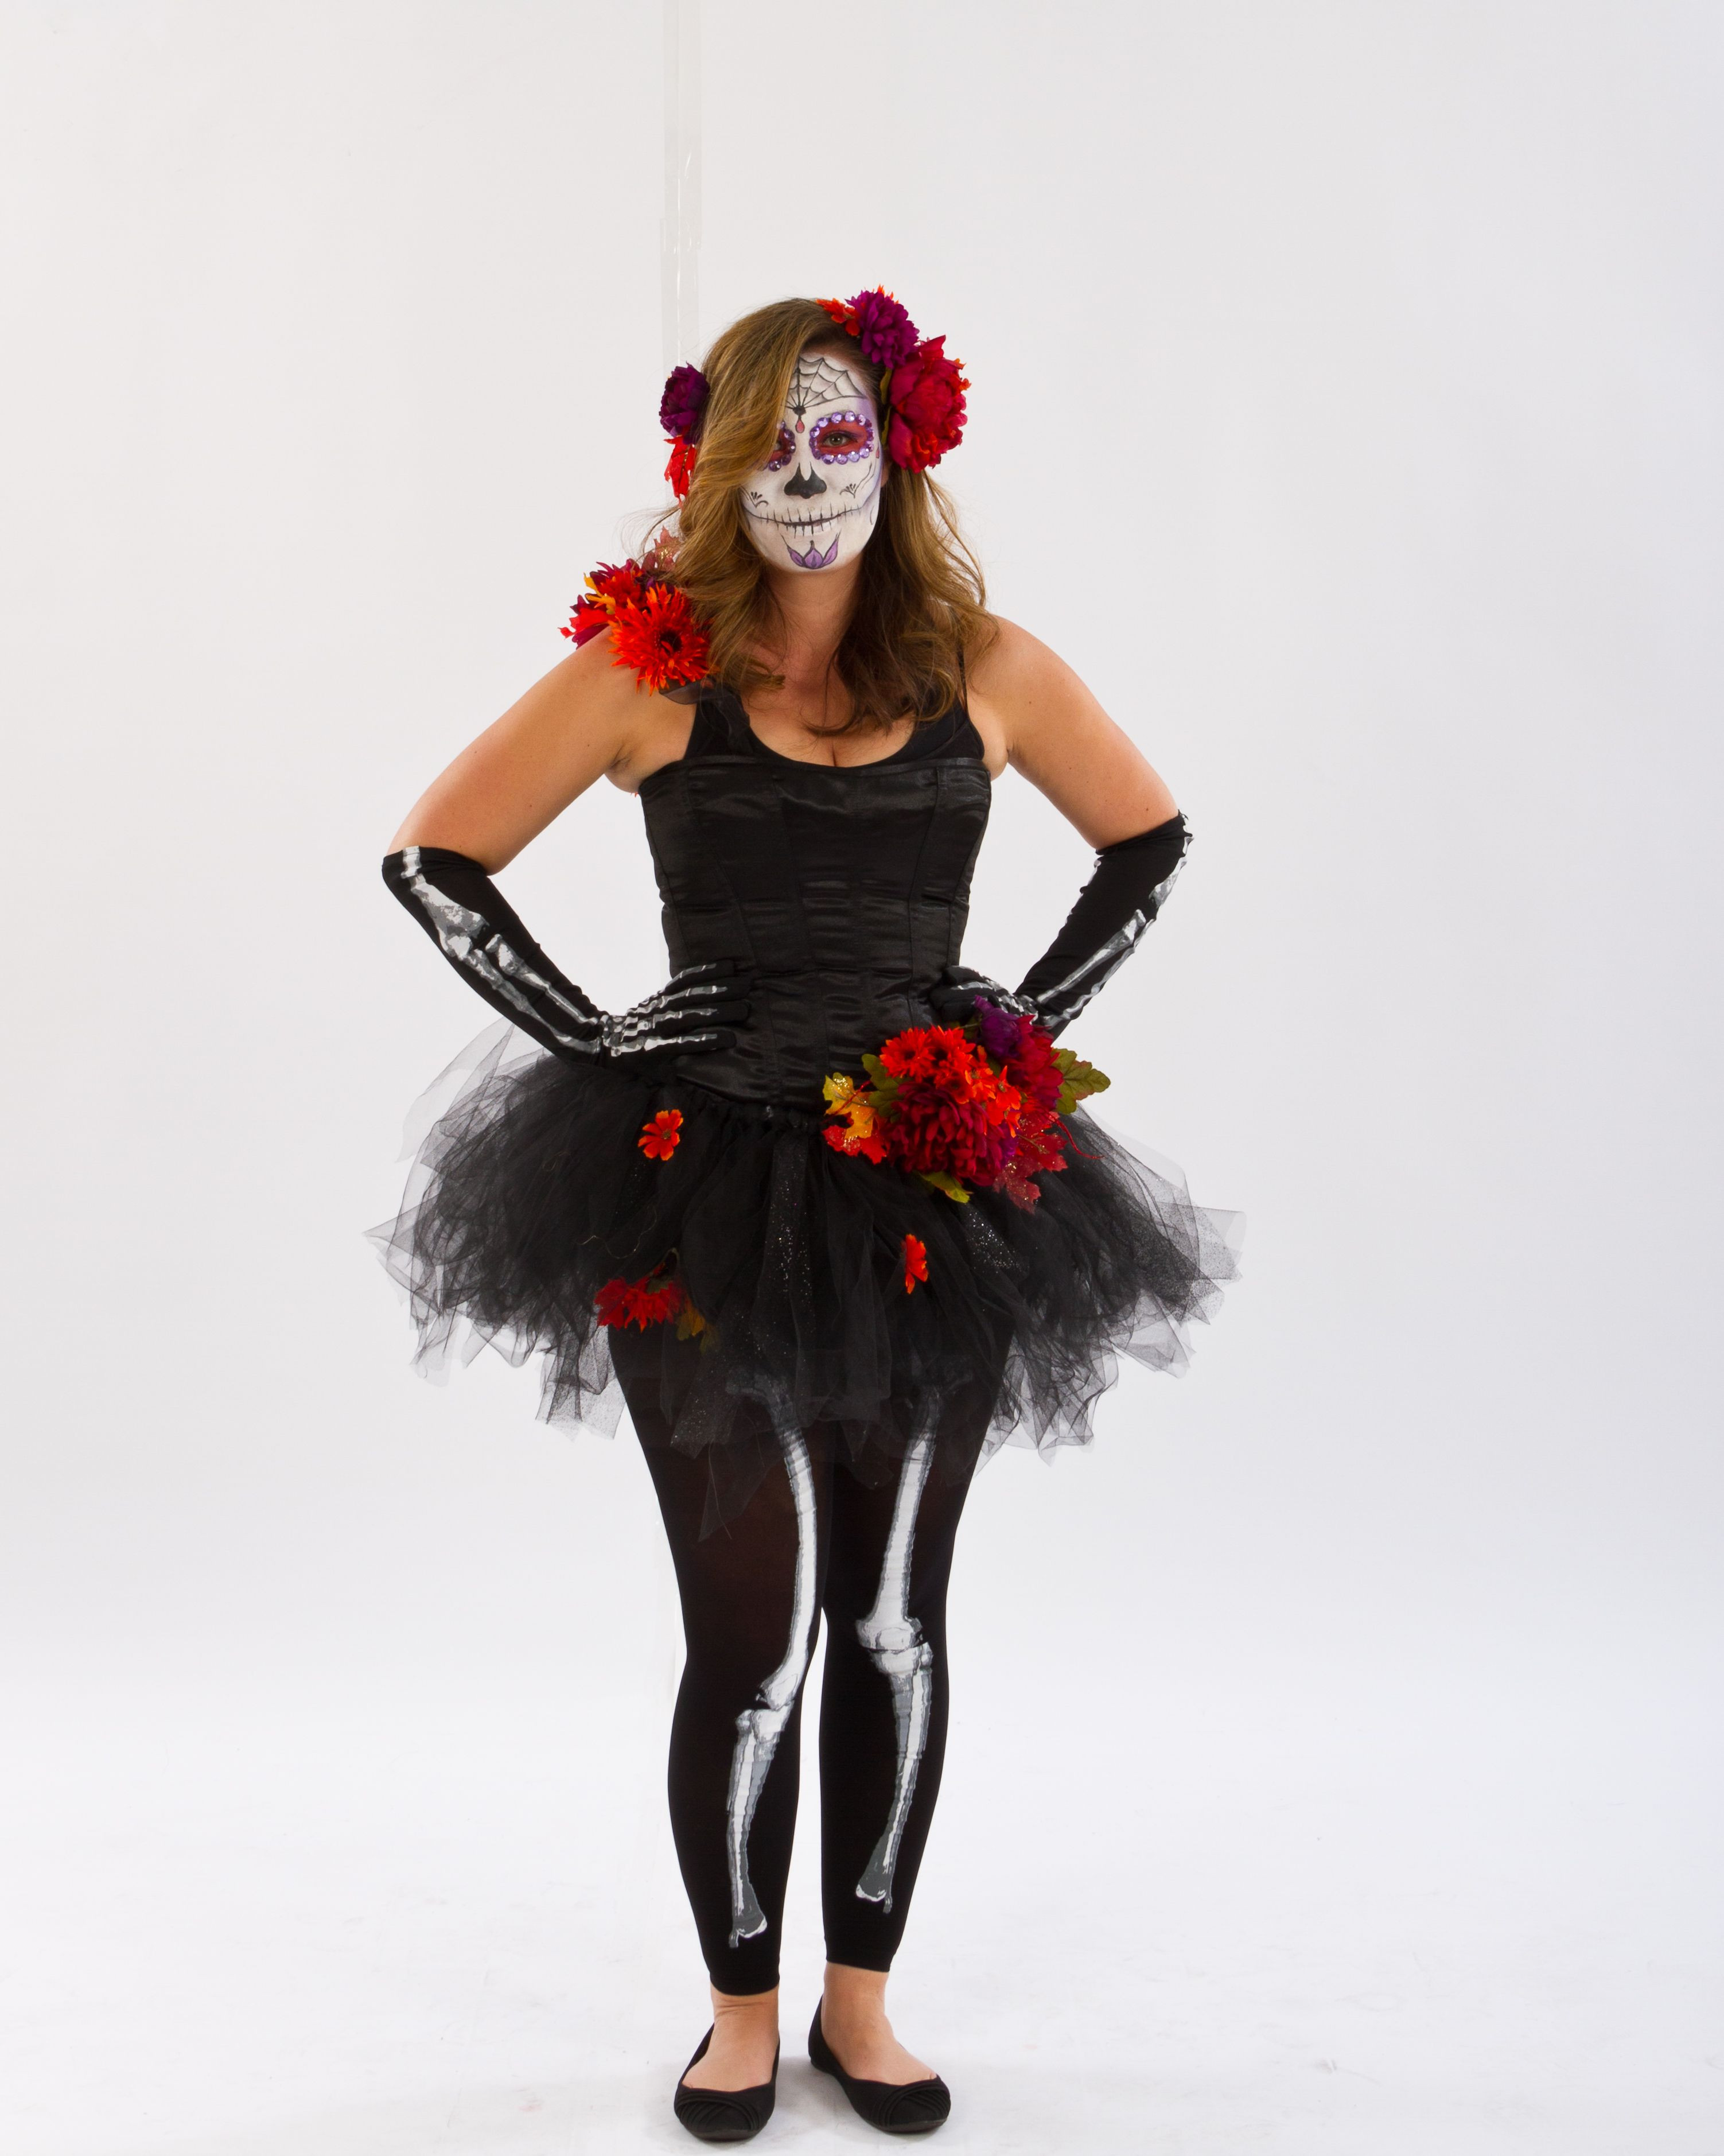 Best ideas about Day Of The Dead DIY Costume . Save or Pin To for DIY Day of the Dead costume starting with Now.